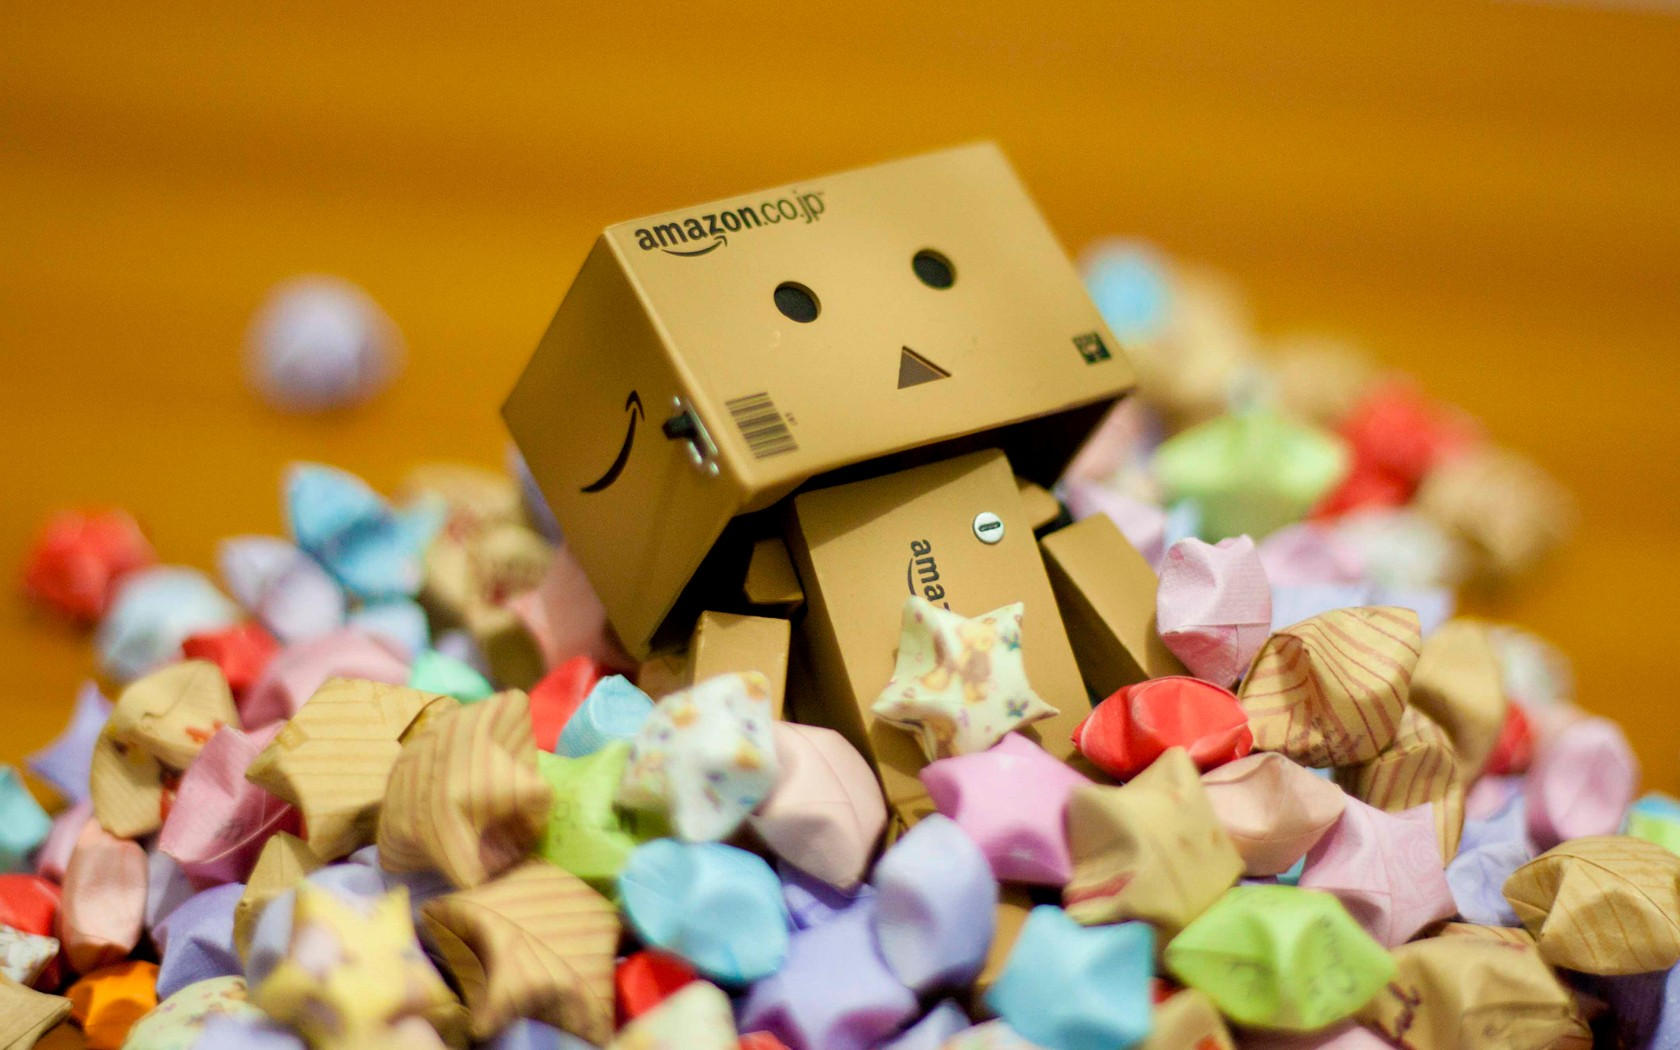 Cute Danbo Wallpaper